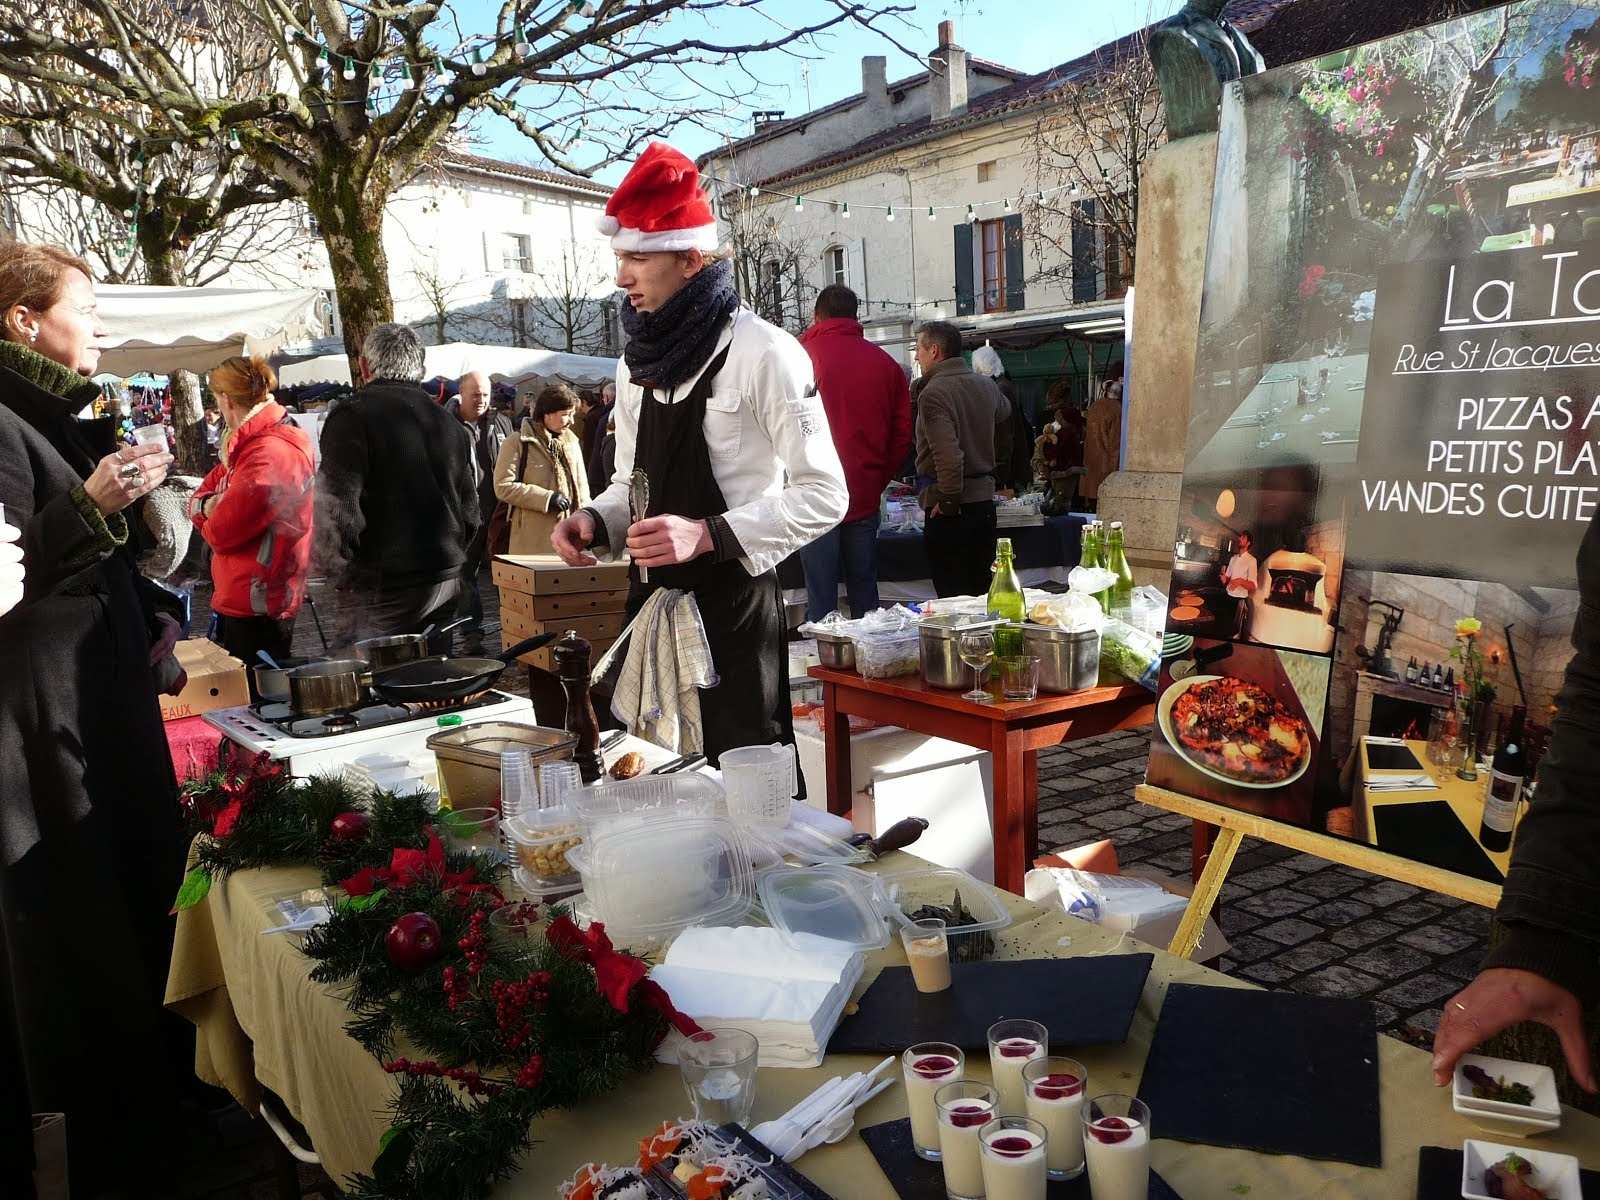 At the Aubettere-sur-Dronne Christmas market